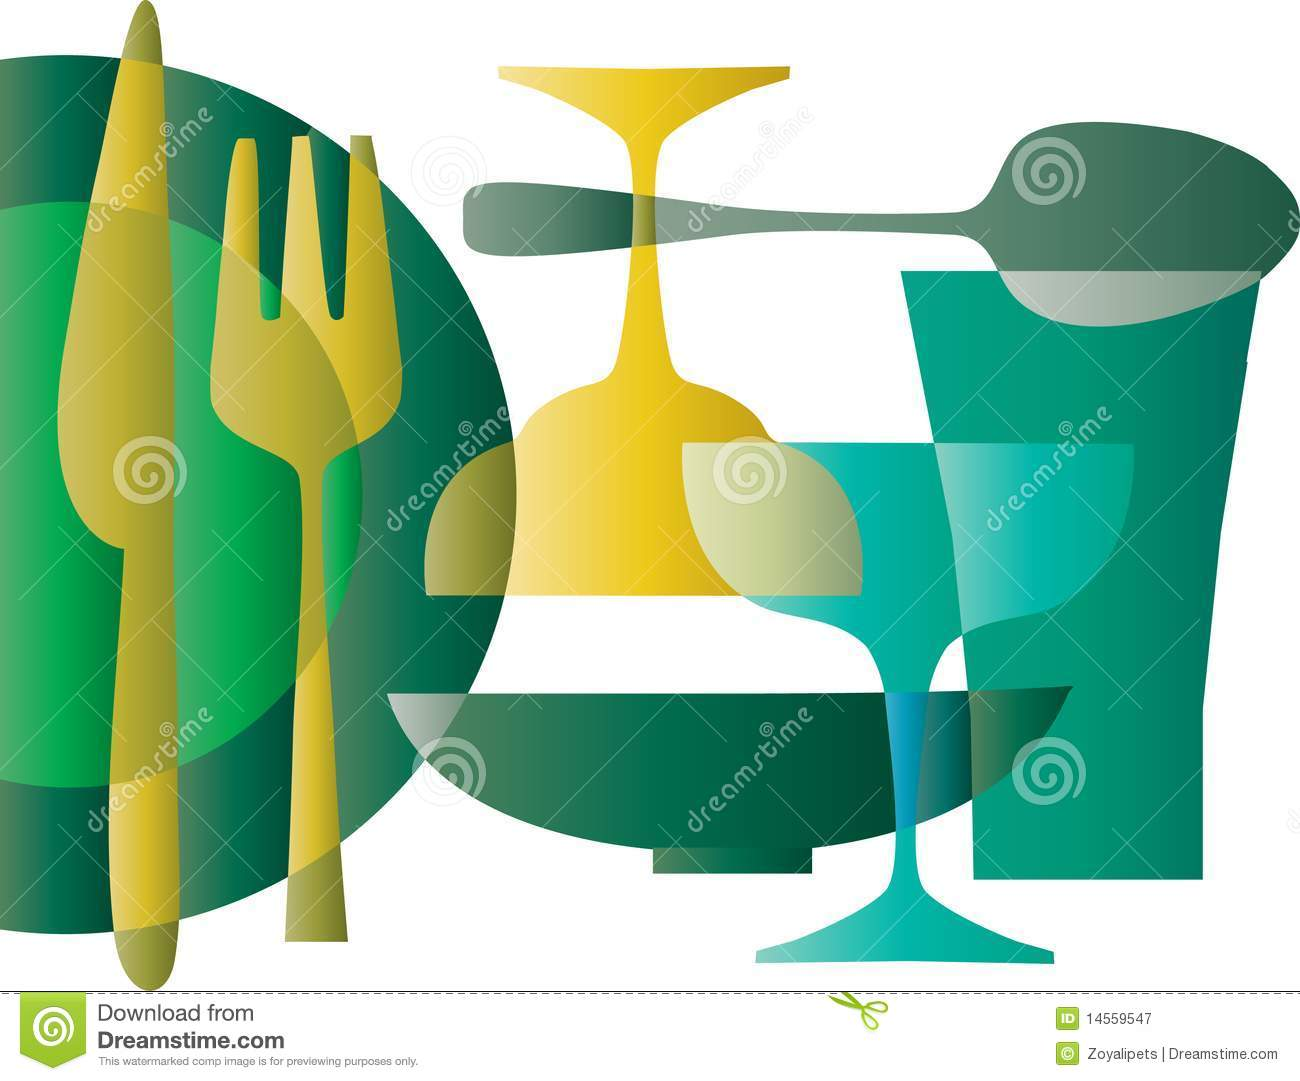 Kitchen Wallpaper Pattern - 1 Stock Vector - Illustration of ...